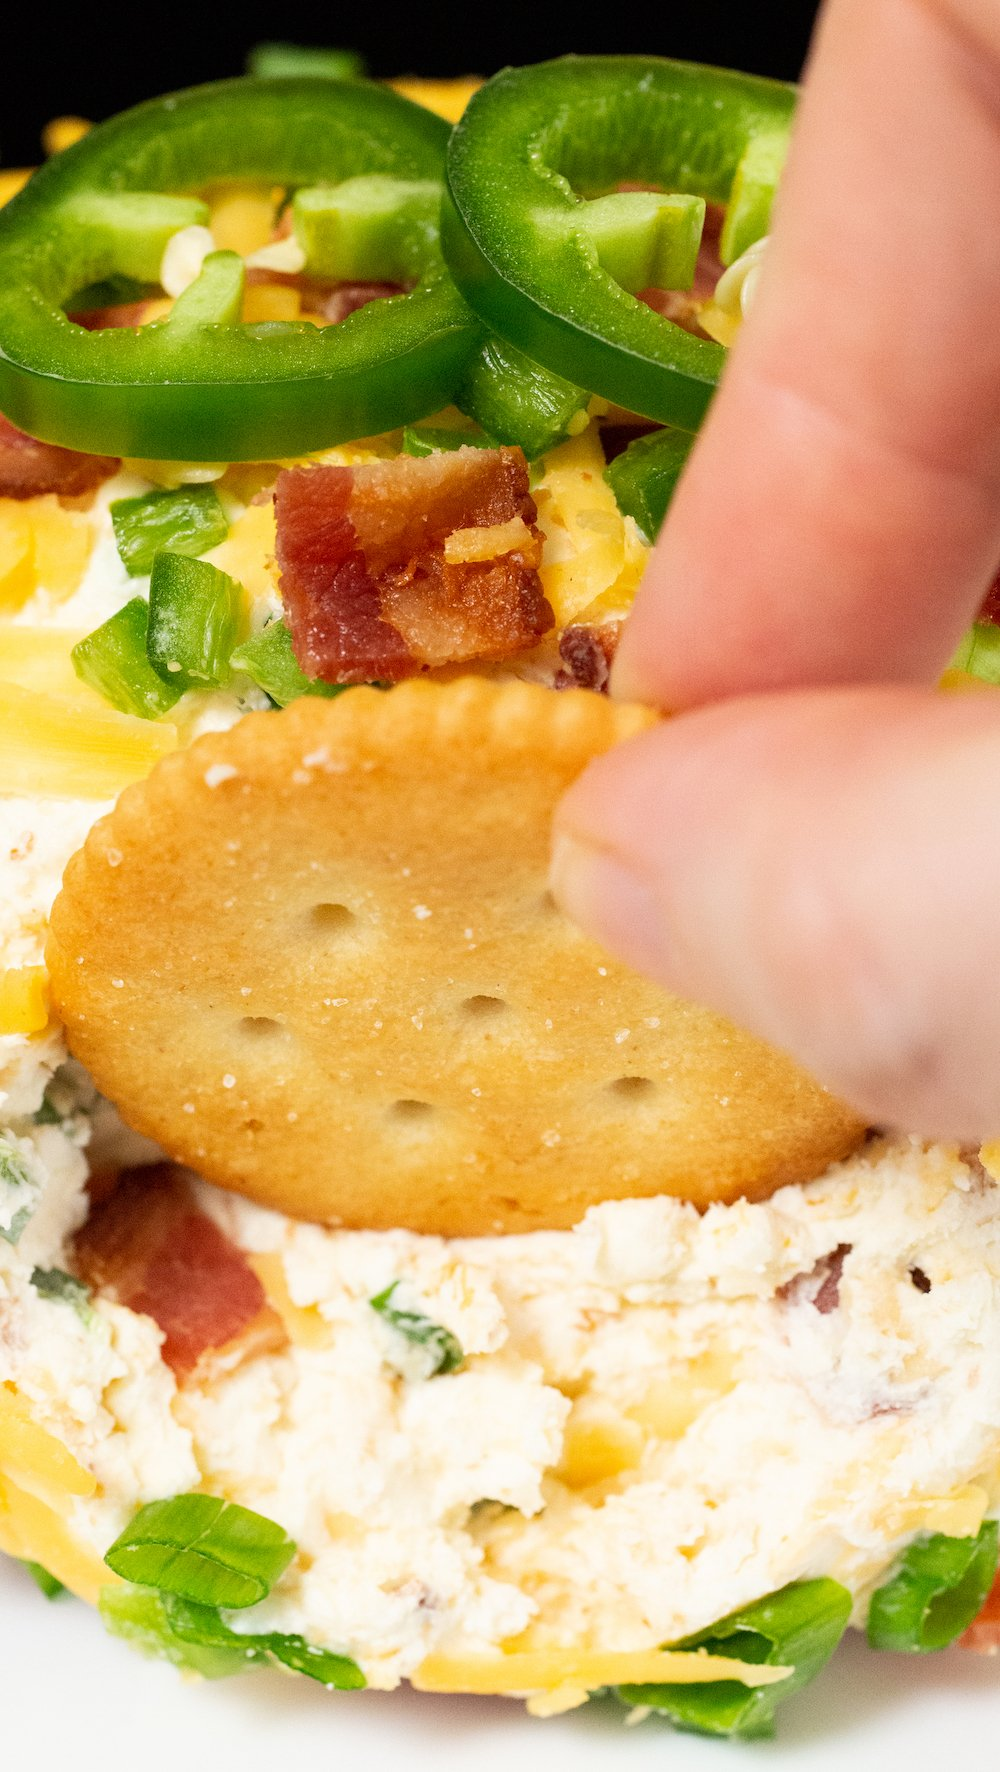 Close up of a ritz cracker being dipped in a jalapeno popper cheese ball